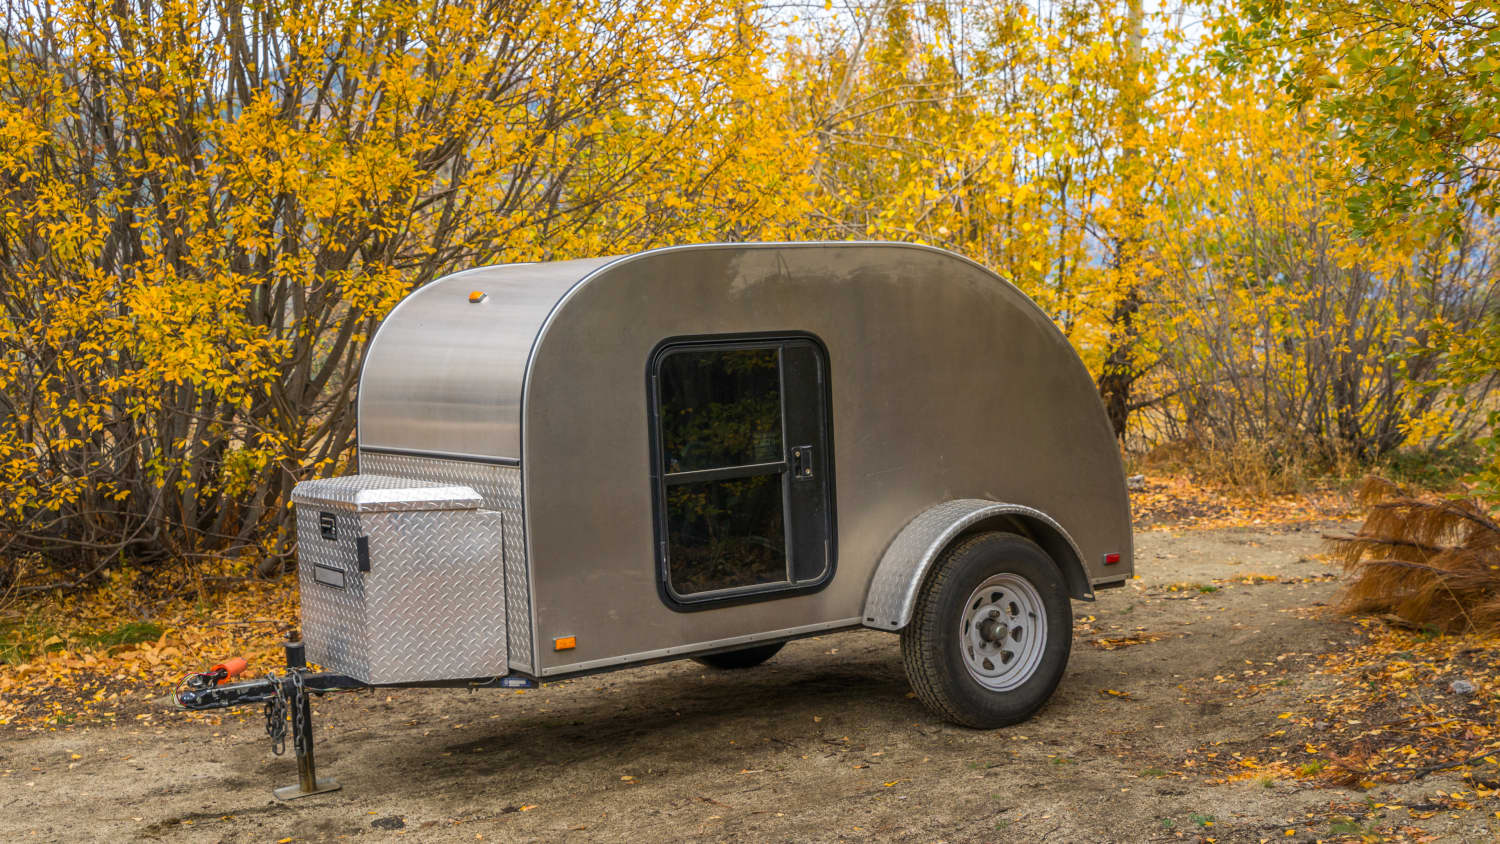 This Guy Built a Teardrop Travel Trailer from Scratch